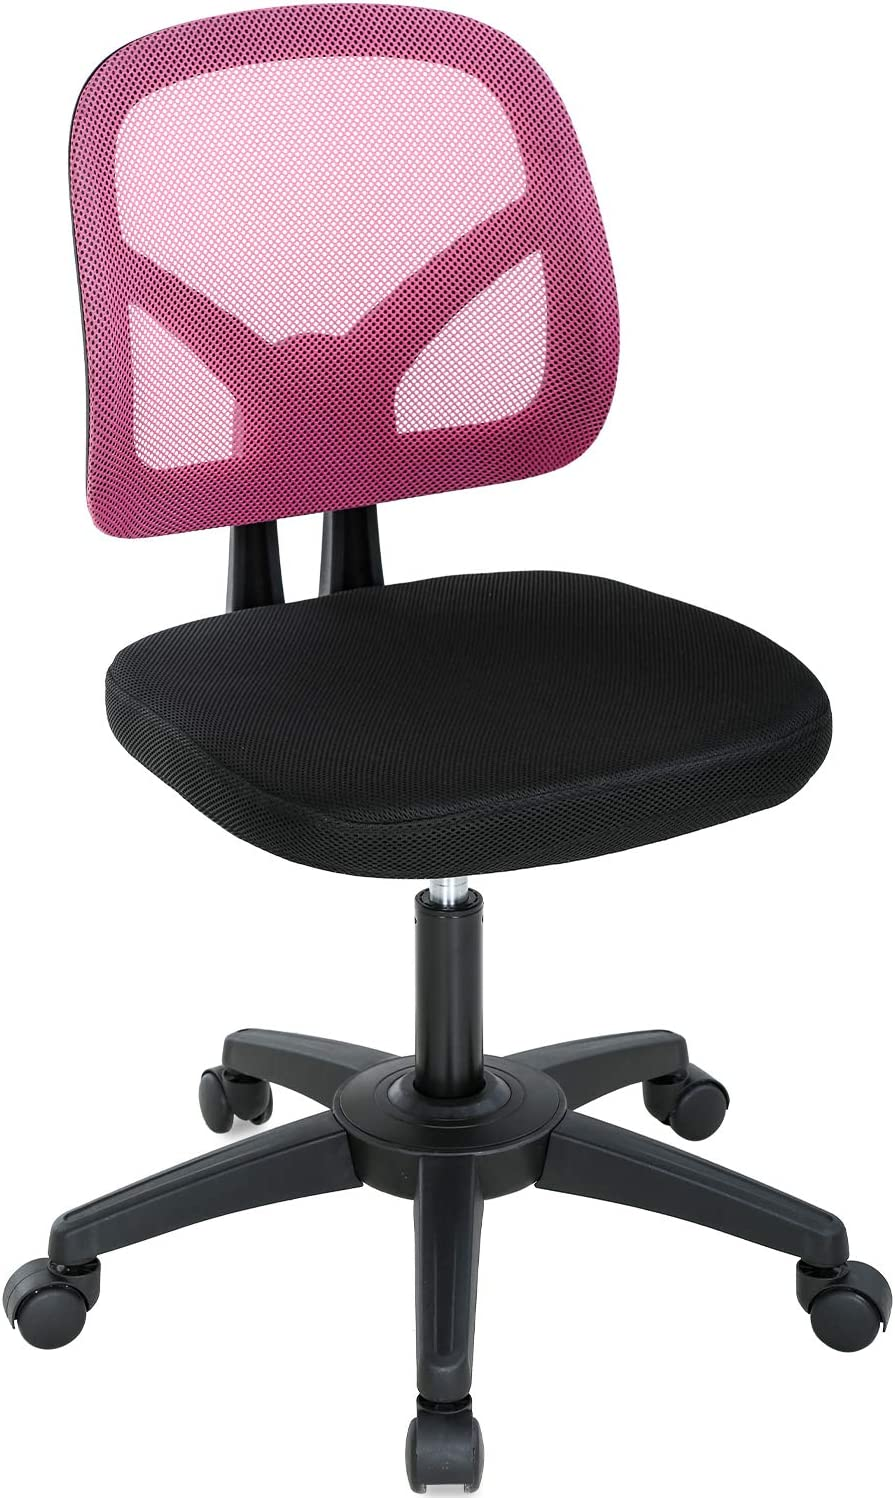 Home Office Chair Adjustable Desk Chair Mesh Ergonomic Chair with Lumbar Support Cute Computer Chair Swivel Rolling Task Chair for Girls(Pink)